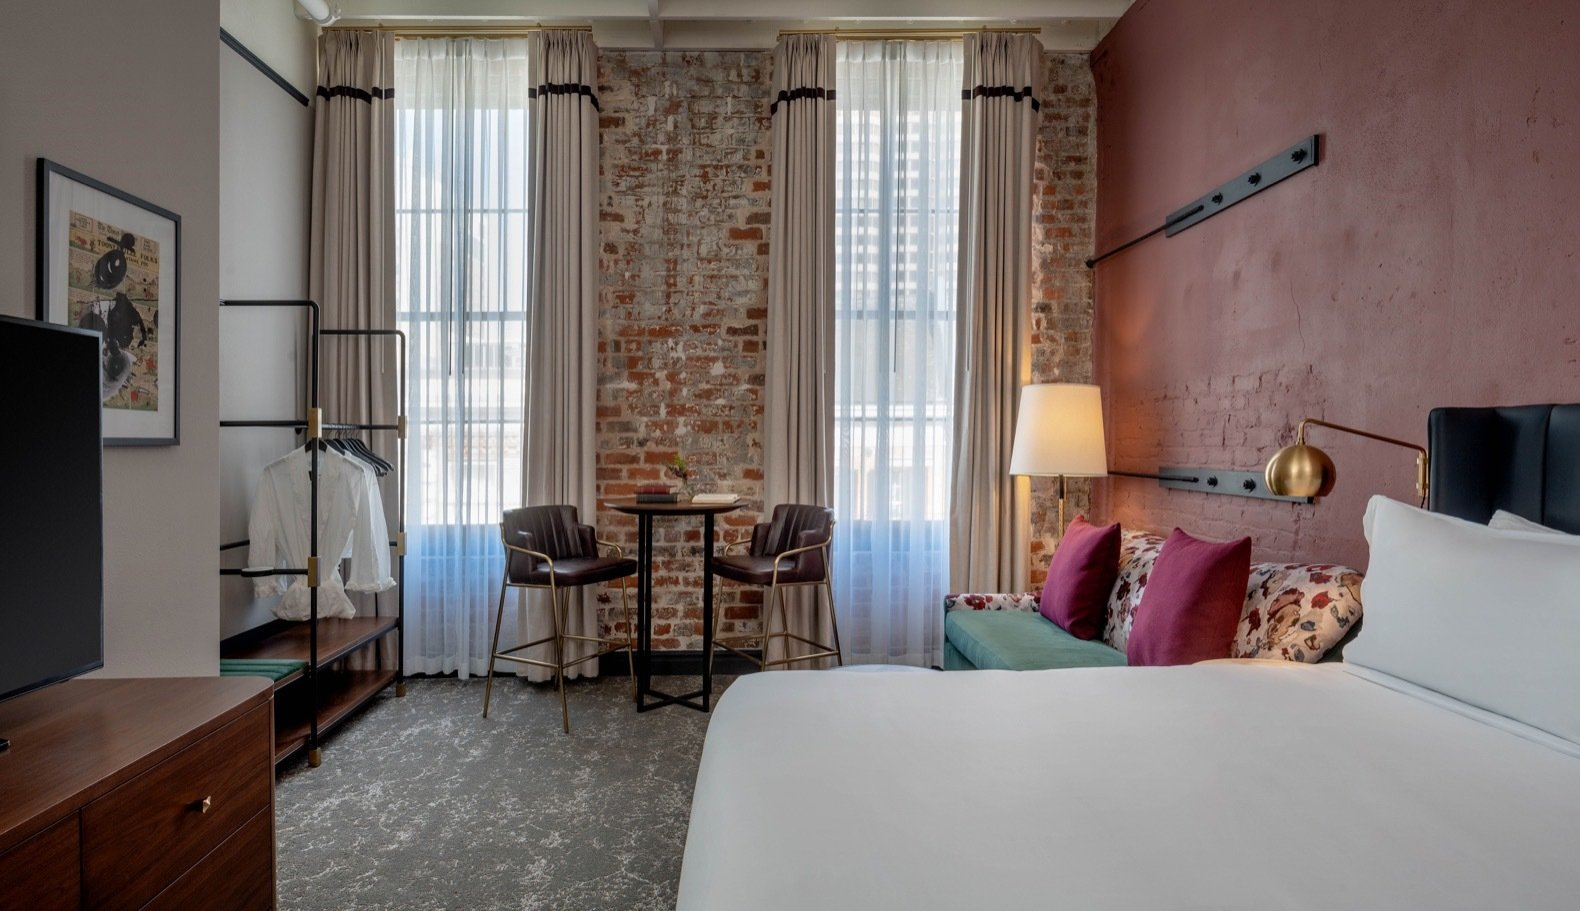 Bedroom, Carpet, Night Stands, Bed, Lamps, Chair, Floor, and Wall Exposed brick walls can be seen in the Premium King Suite, which overlooks views of Magazine Street.   Bedroom Carpet Floor Night Stands Photos from Seven Historic Warehouses Are Now a Sumptuous New Orleans Hotel